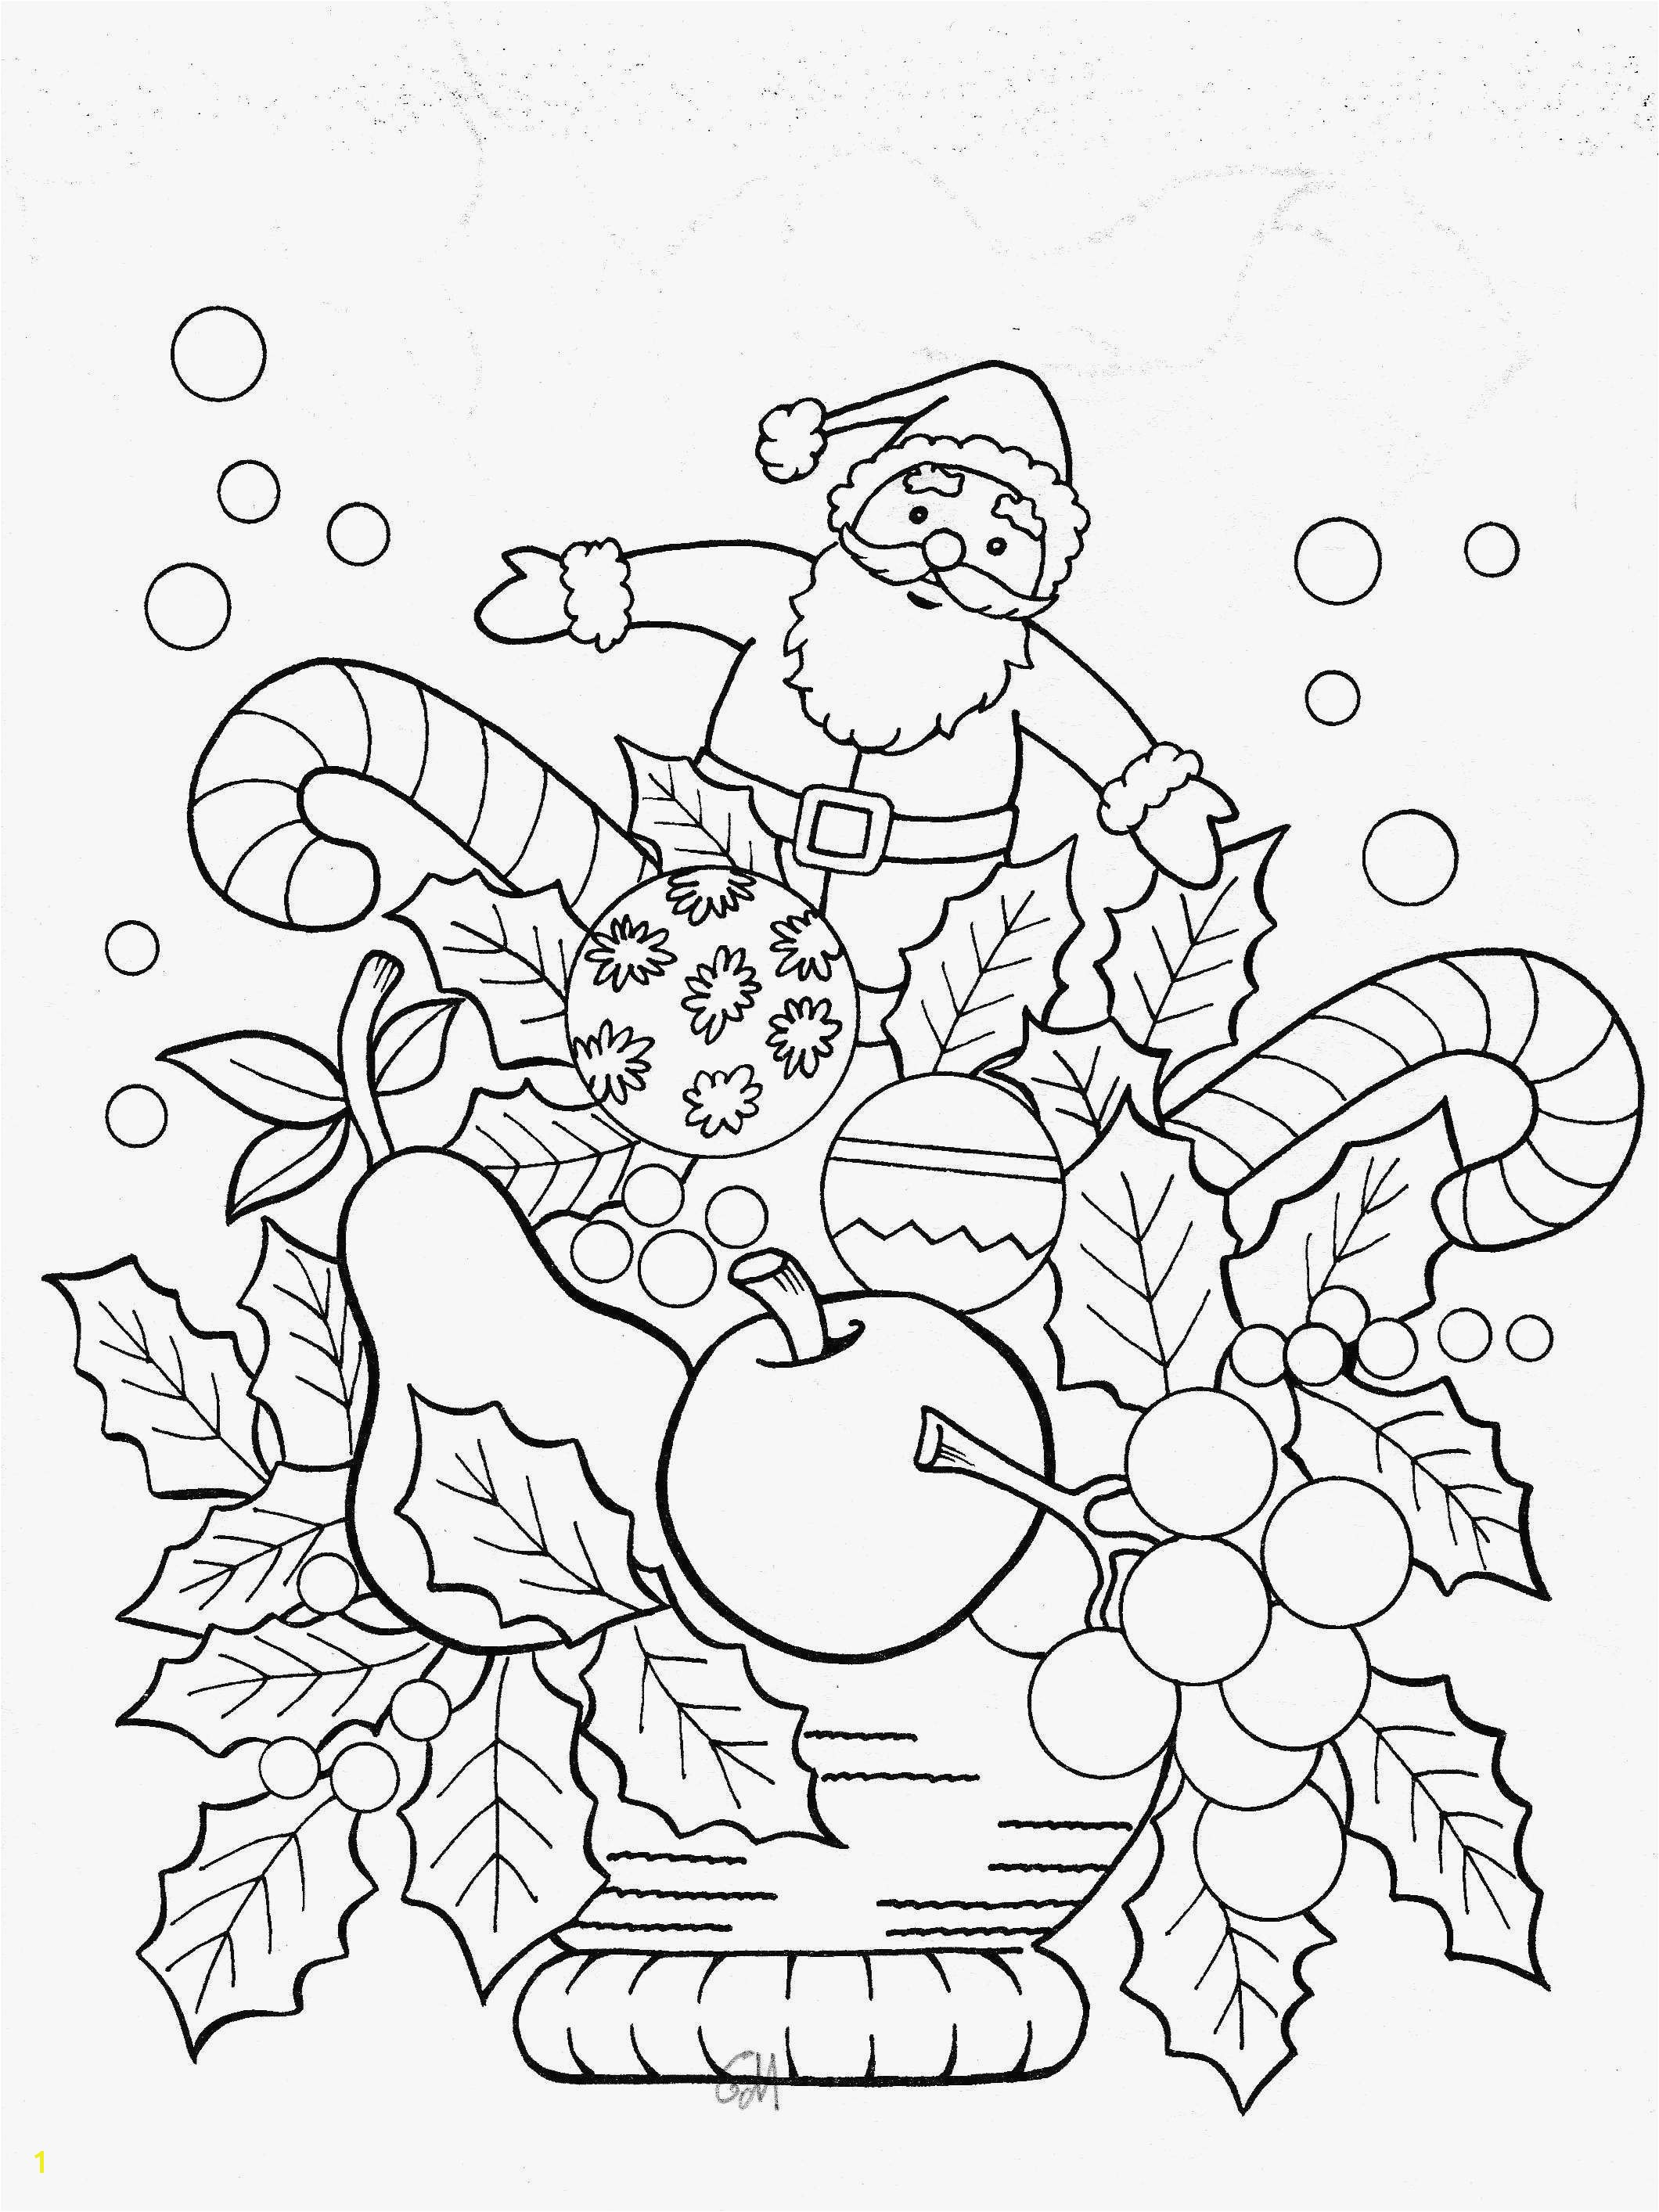 Luxury Christmas Coloring Pages for Printable New Cool Coloring Printables 0d – Fun Time – Coloring